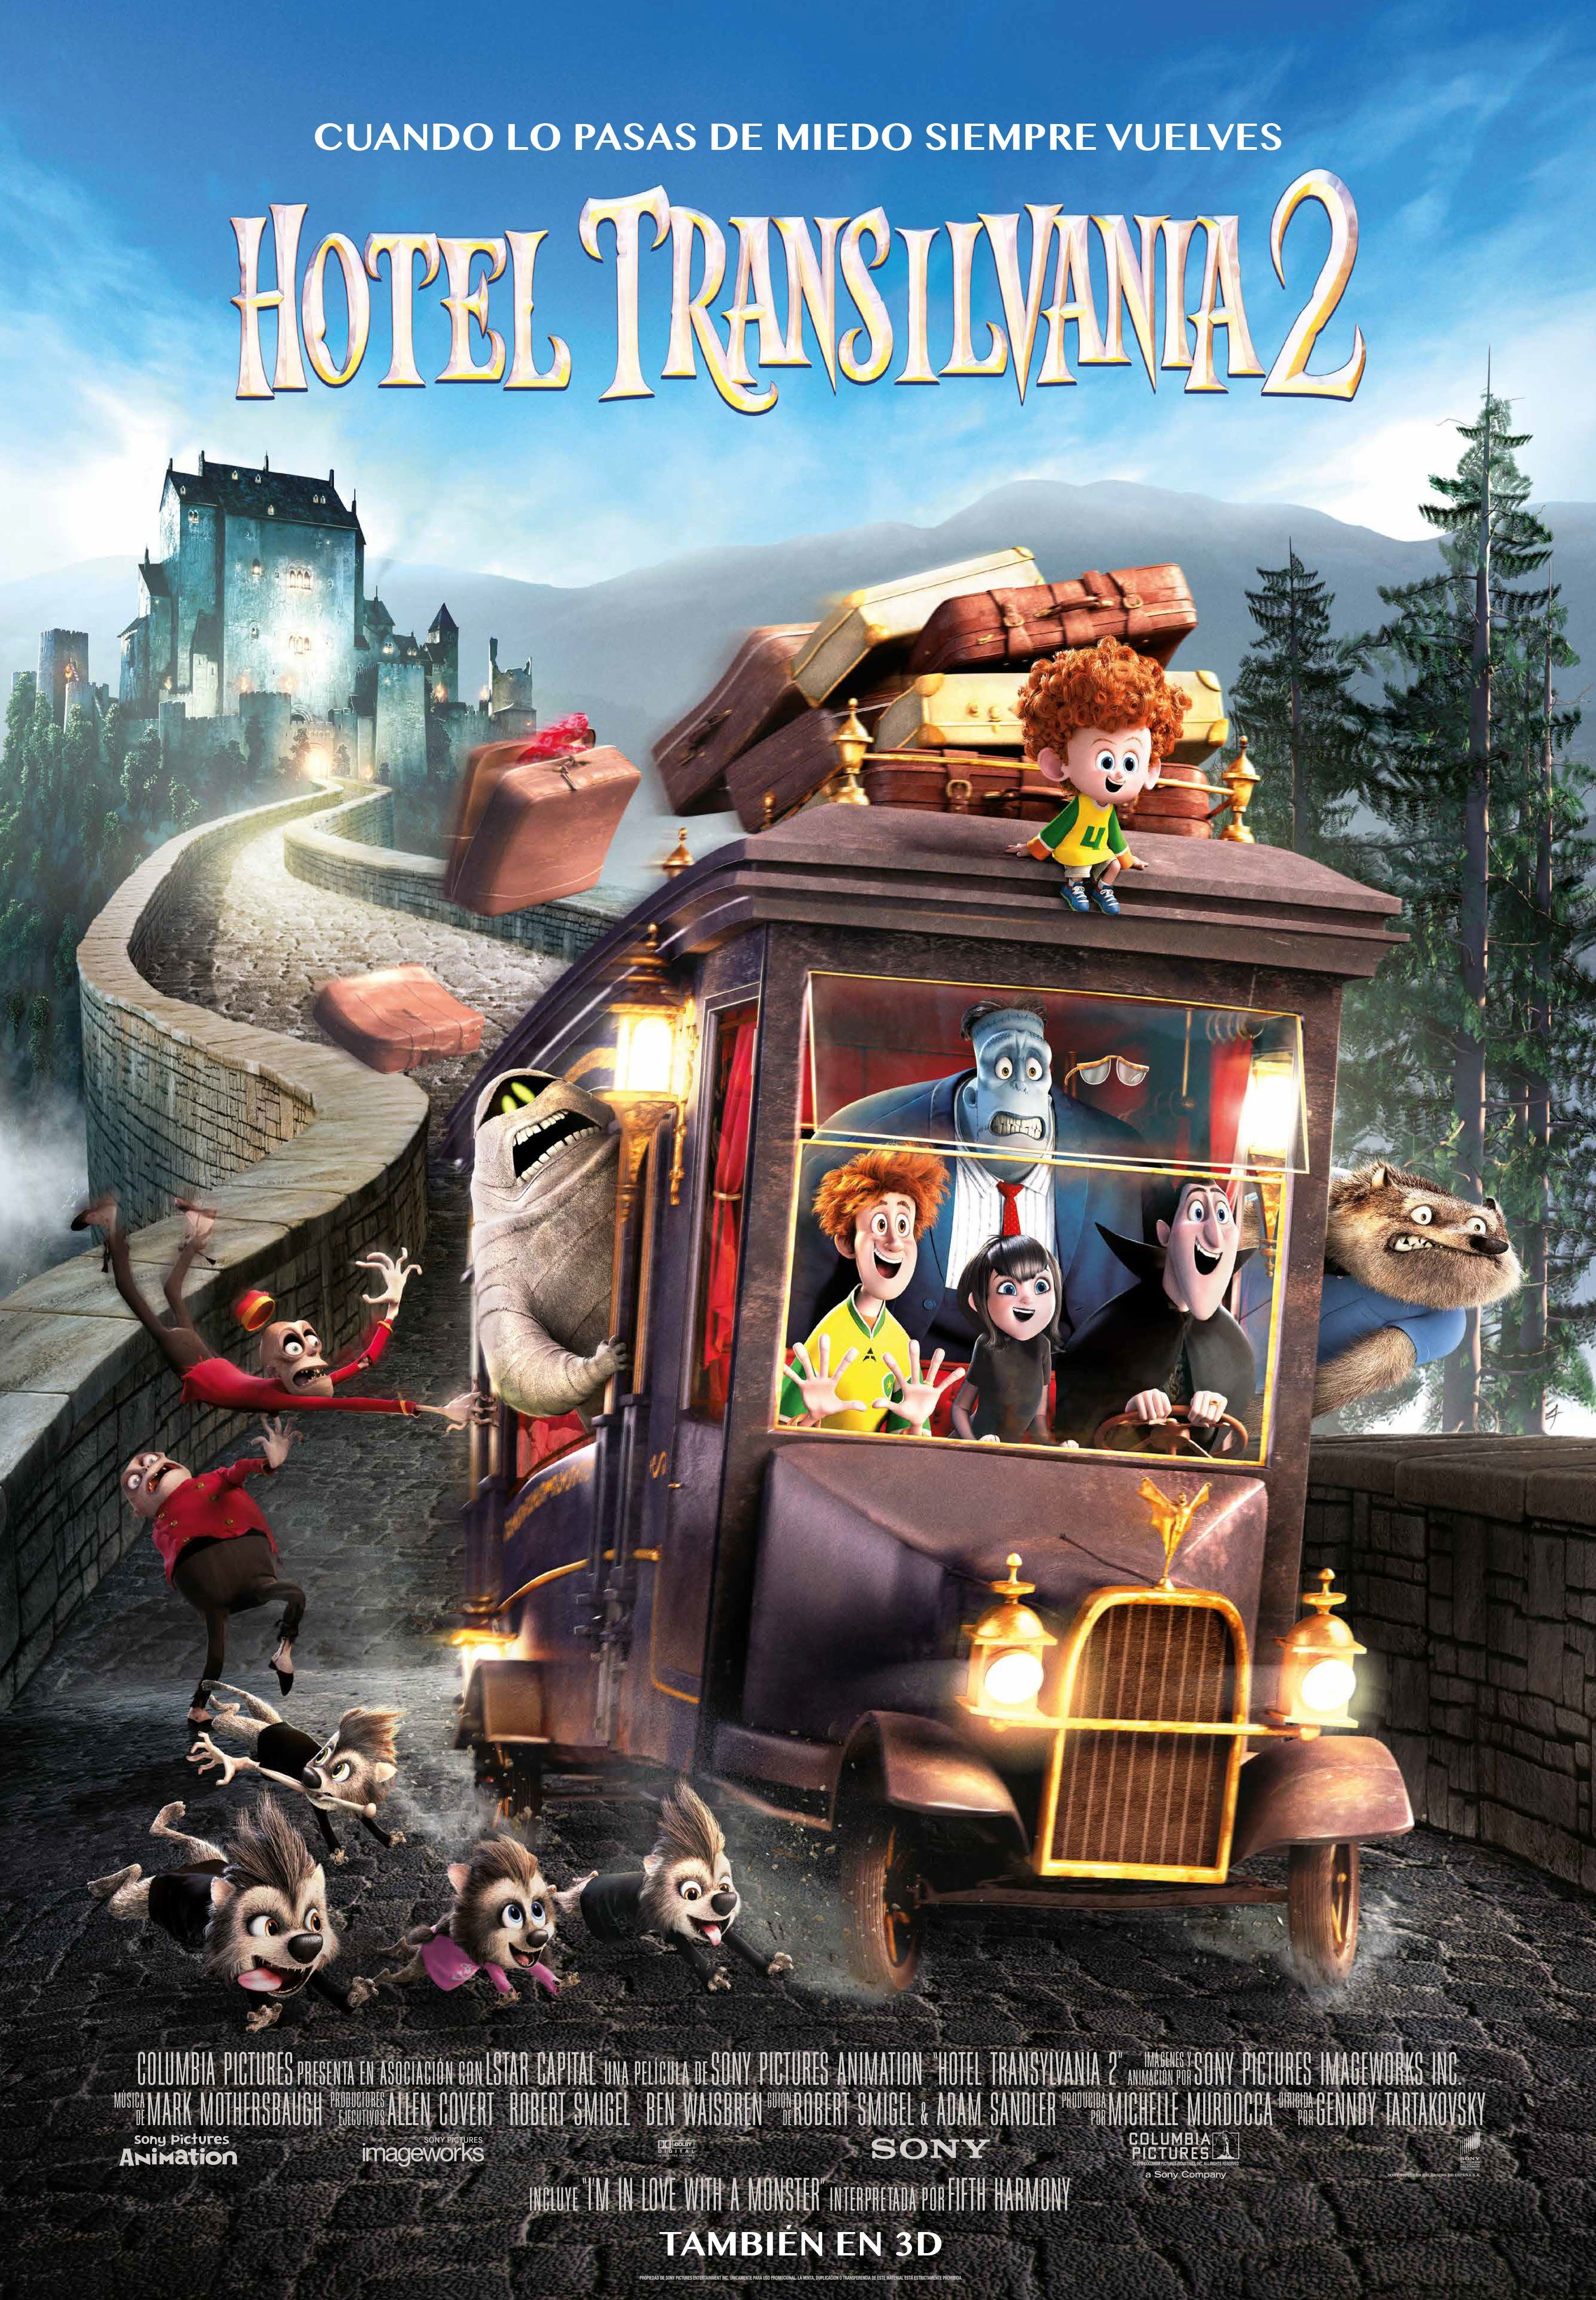 hotel transylvania 2 u torrent download